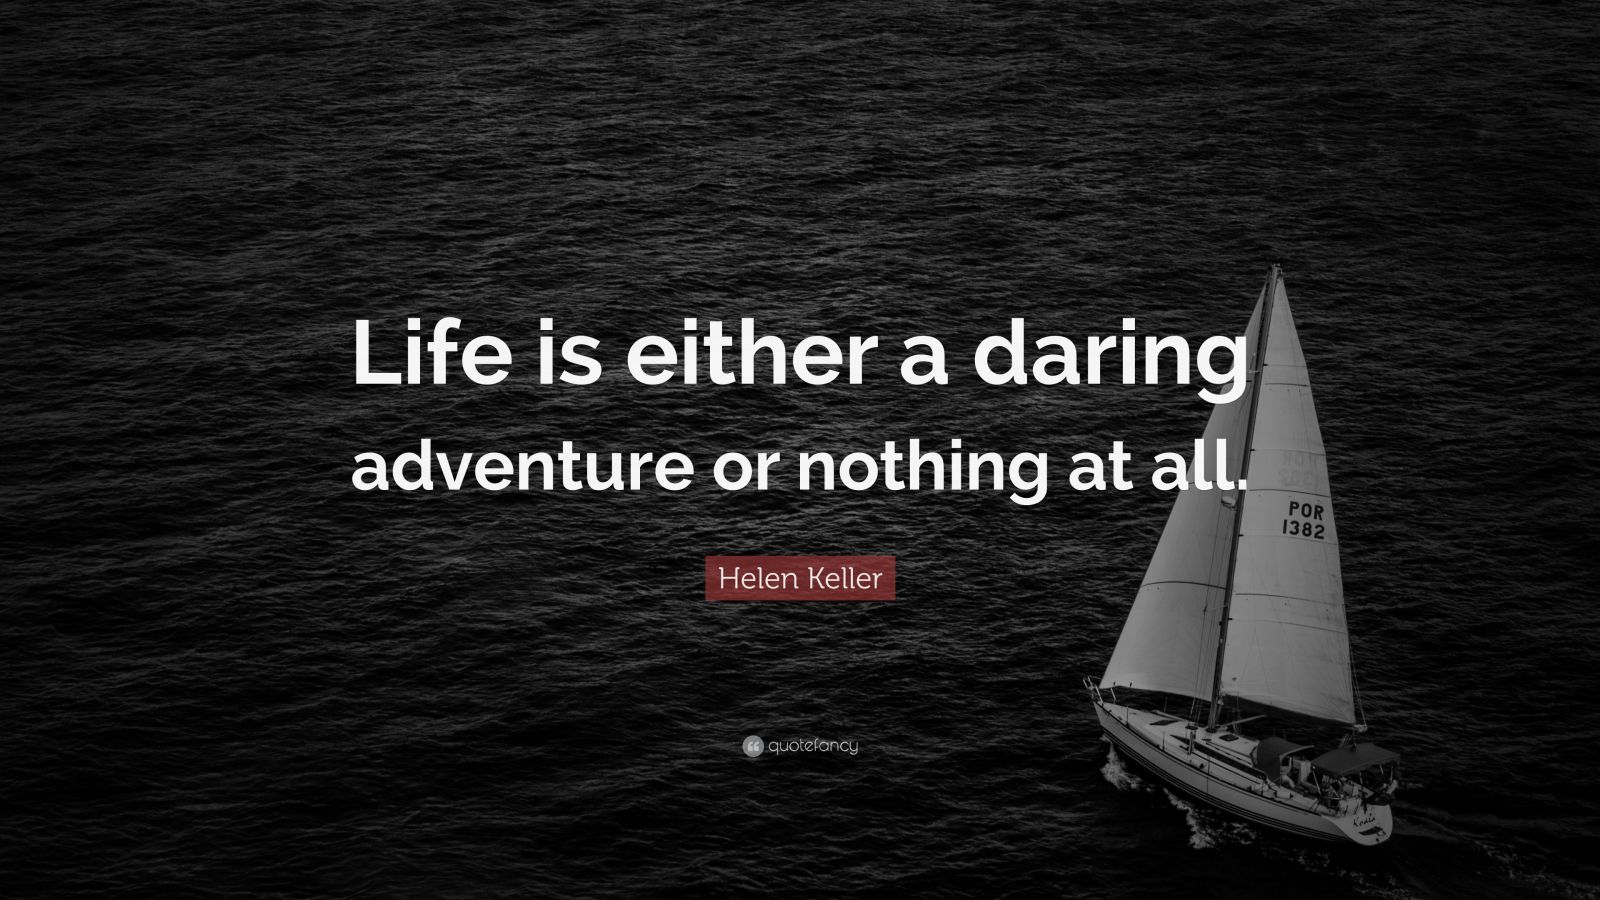 Dalai Lama Quotes Wallpaper Helen Keller Quote Life Is Either A Daring Adventure Or